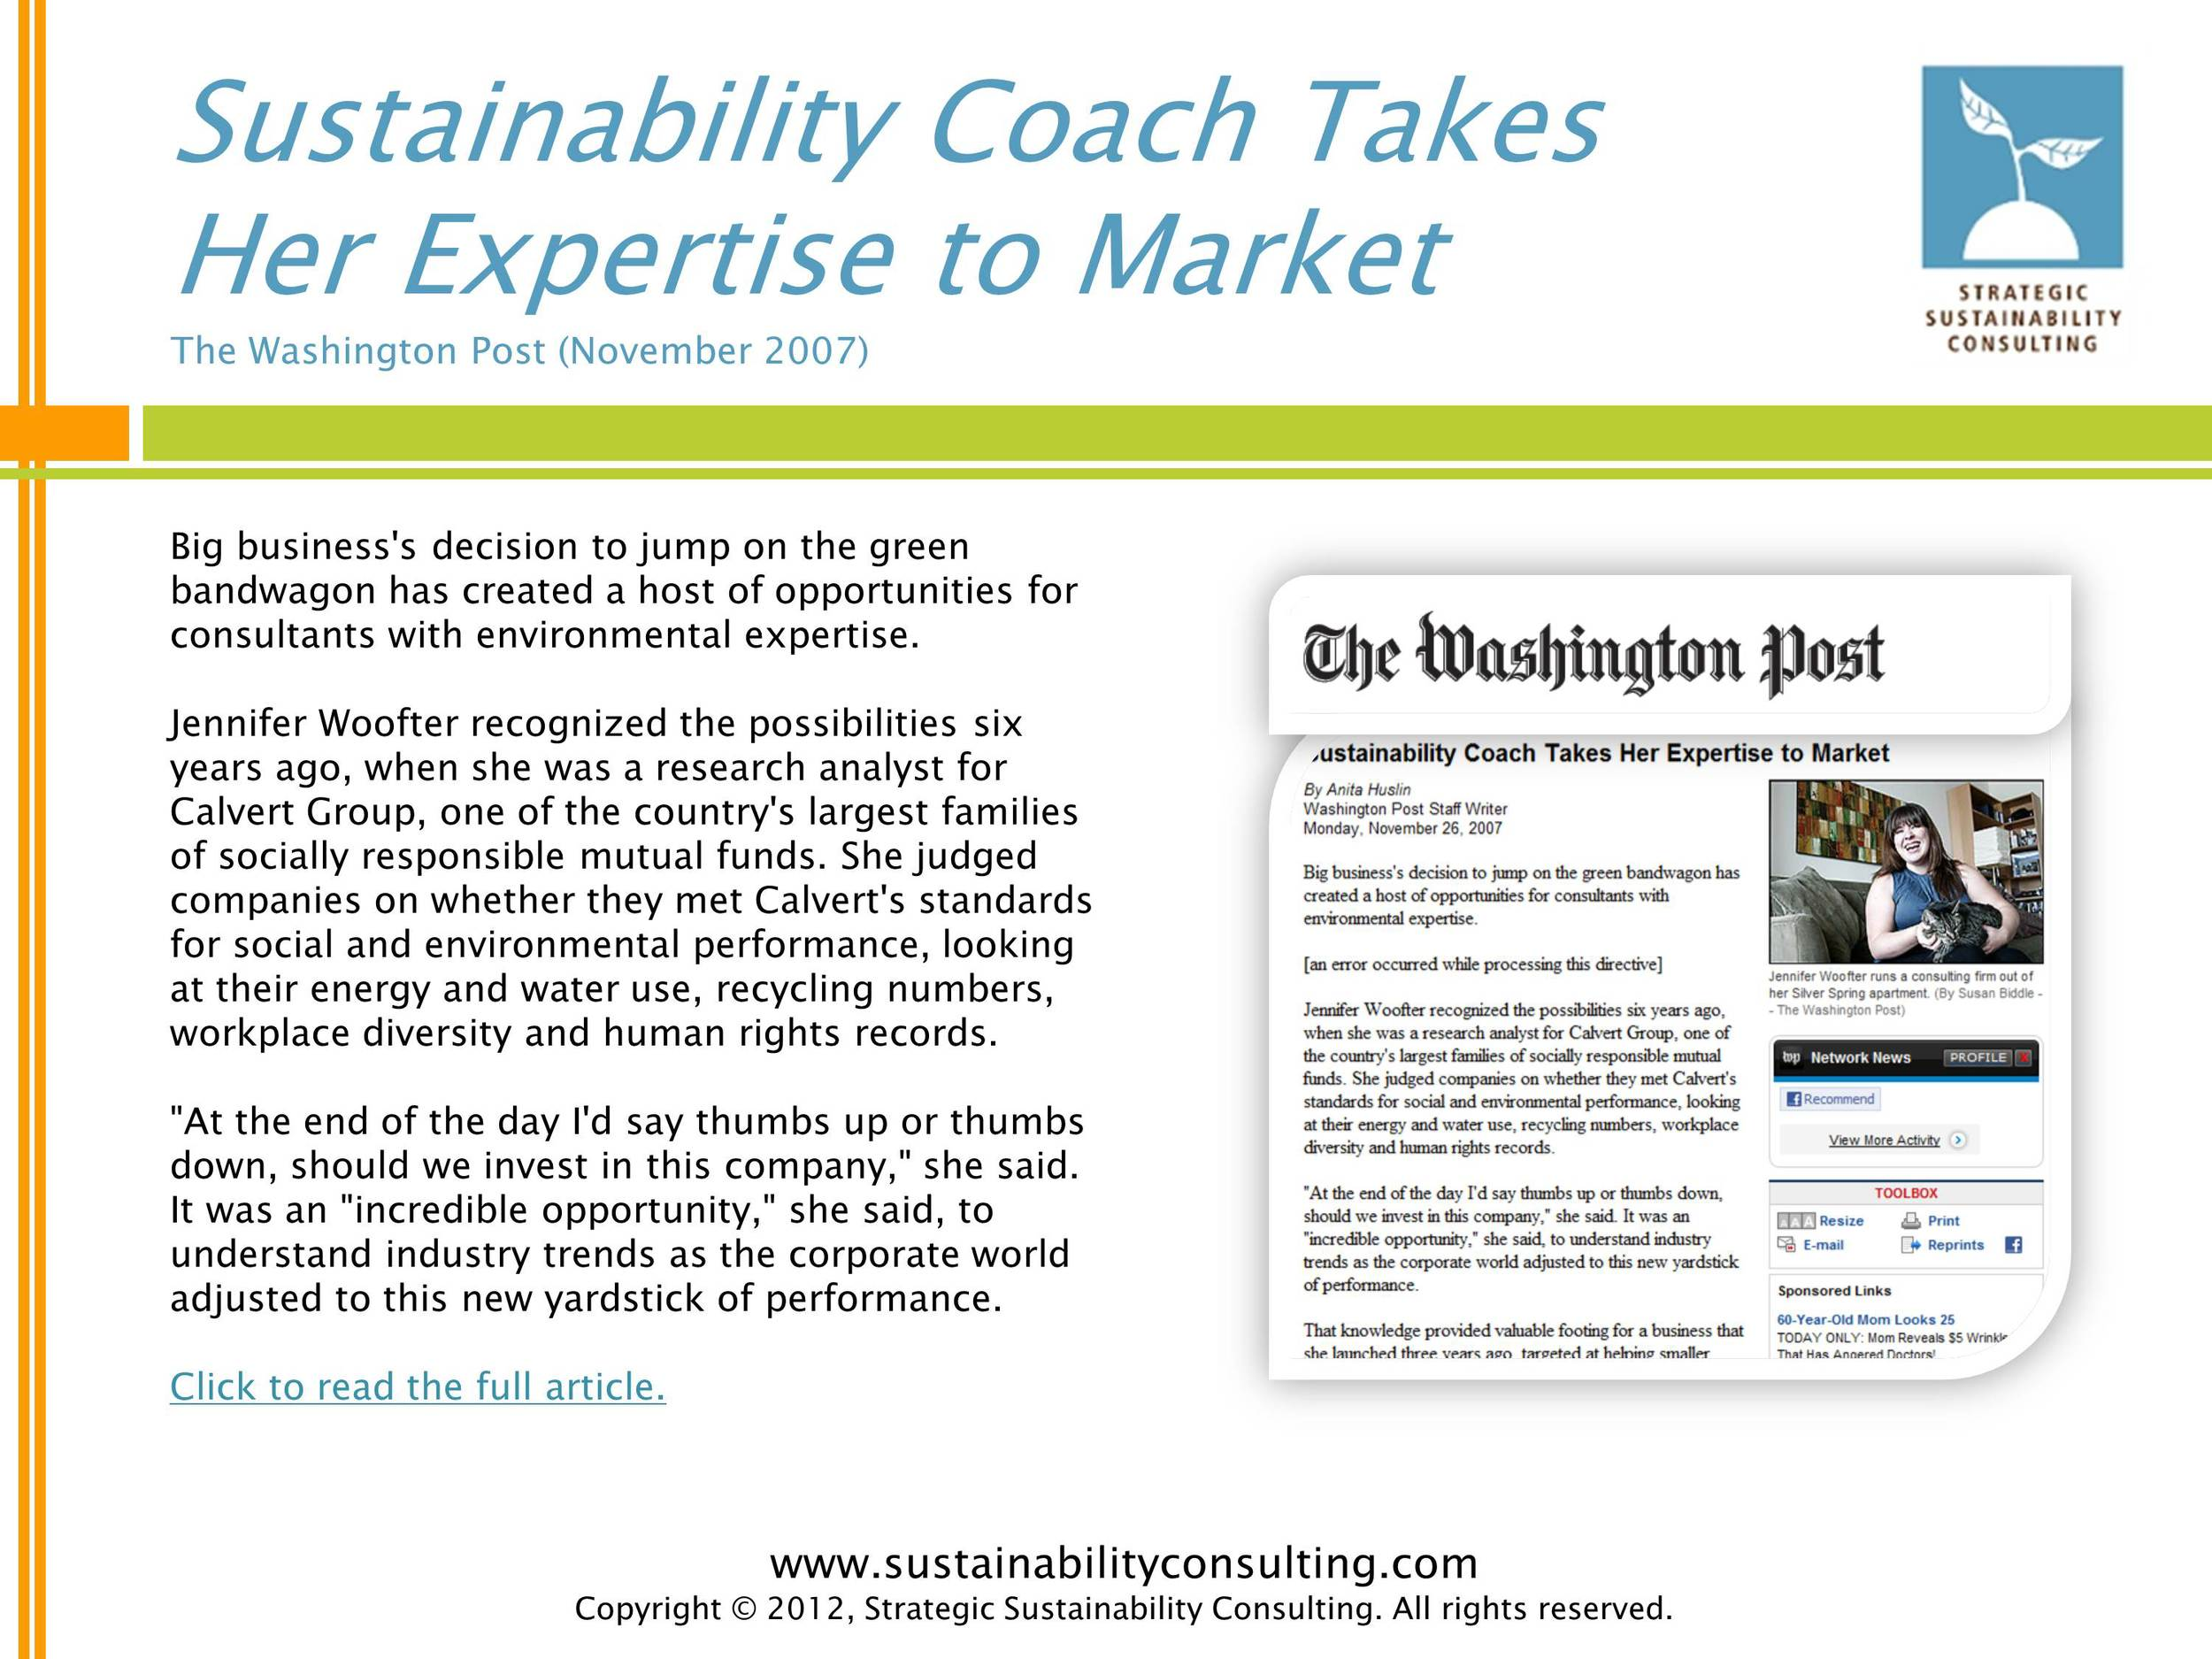 Sustainability Coach Takes Her Expertise to Market